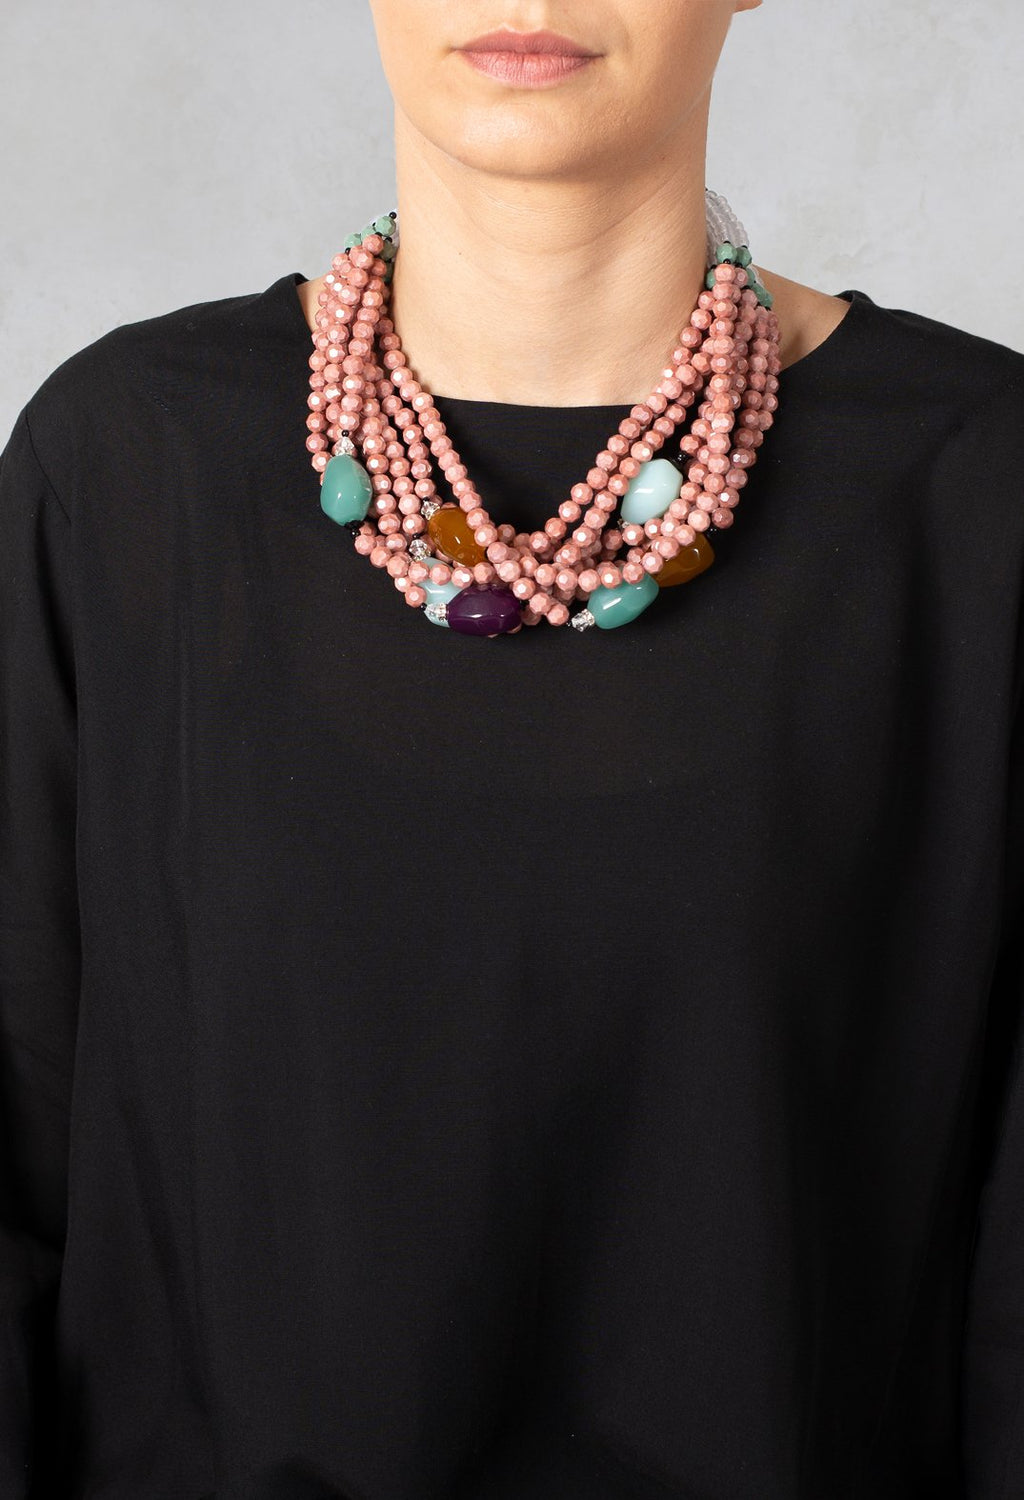 Acqua Twisted Oval Beads Necklace in Pink